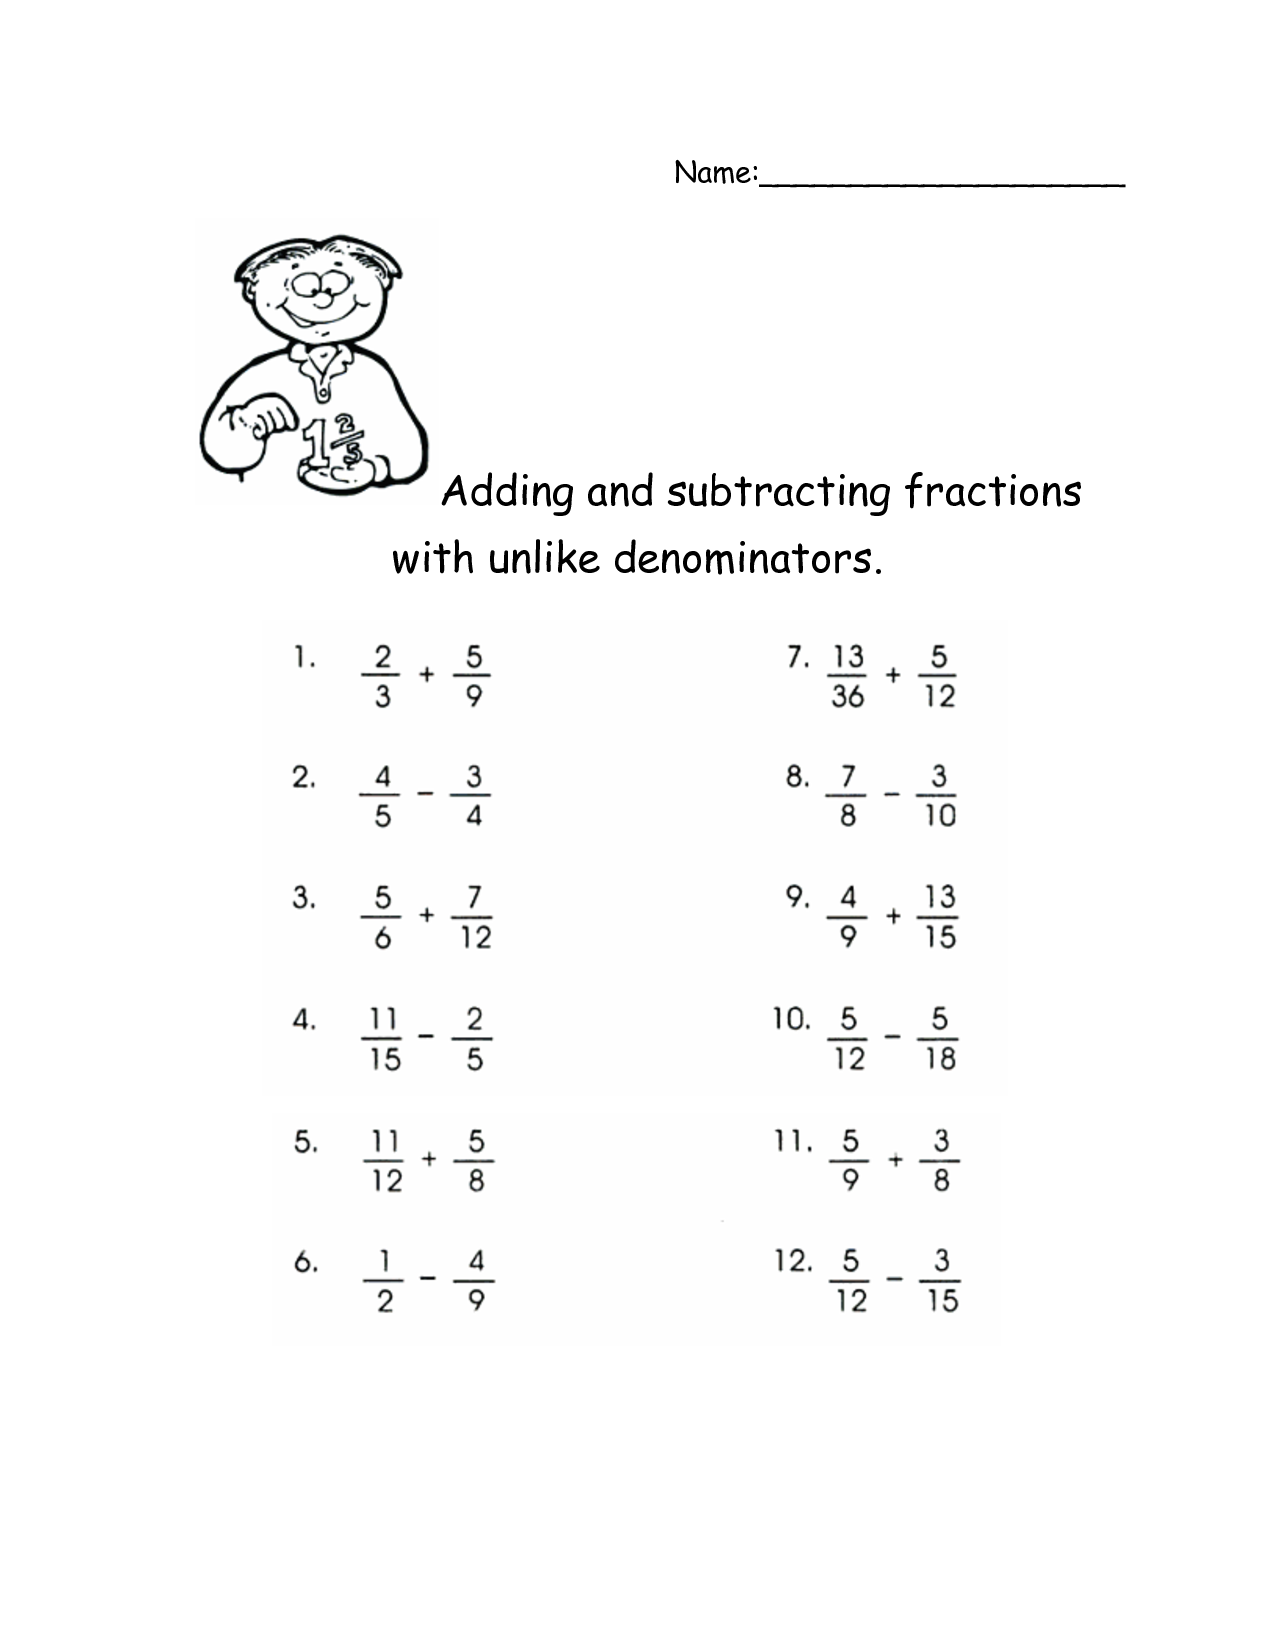 worksheet Fraction Addition And Subtraction Worksheet adding and subtracting fractions with unlike denominators activities